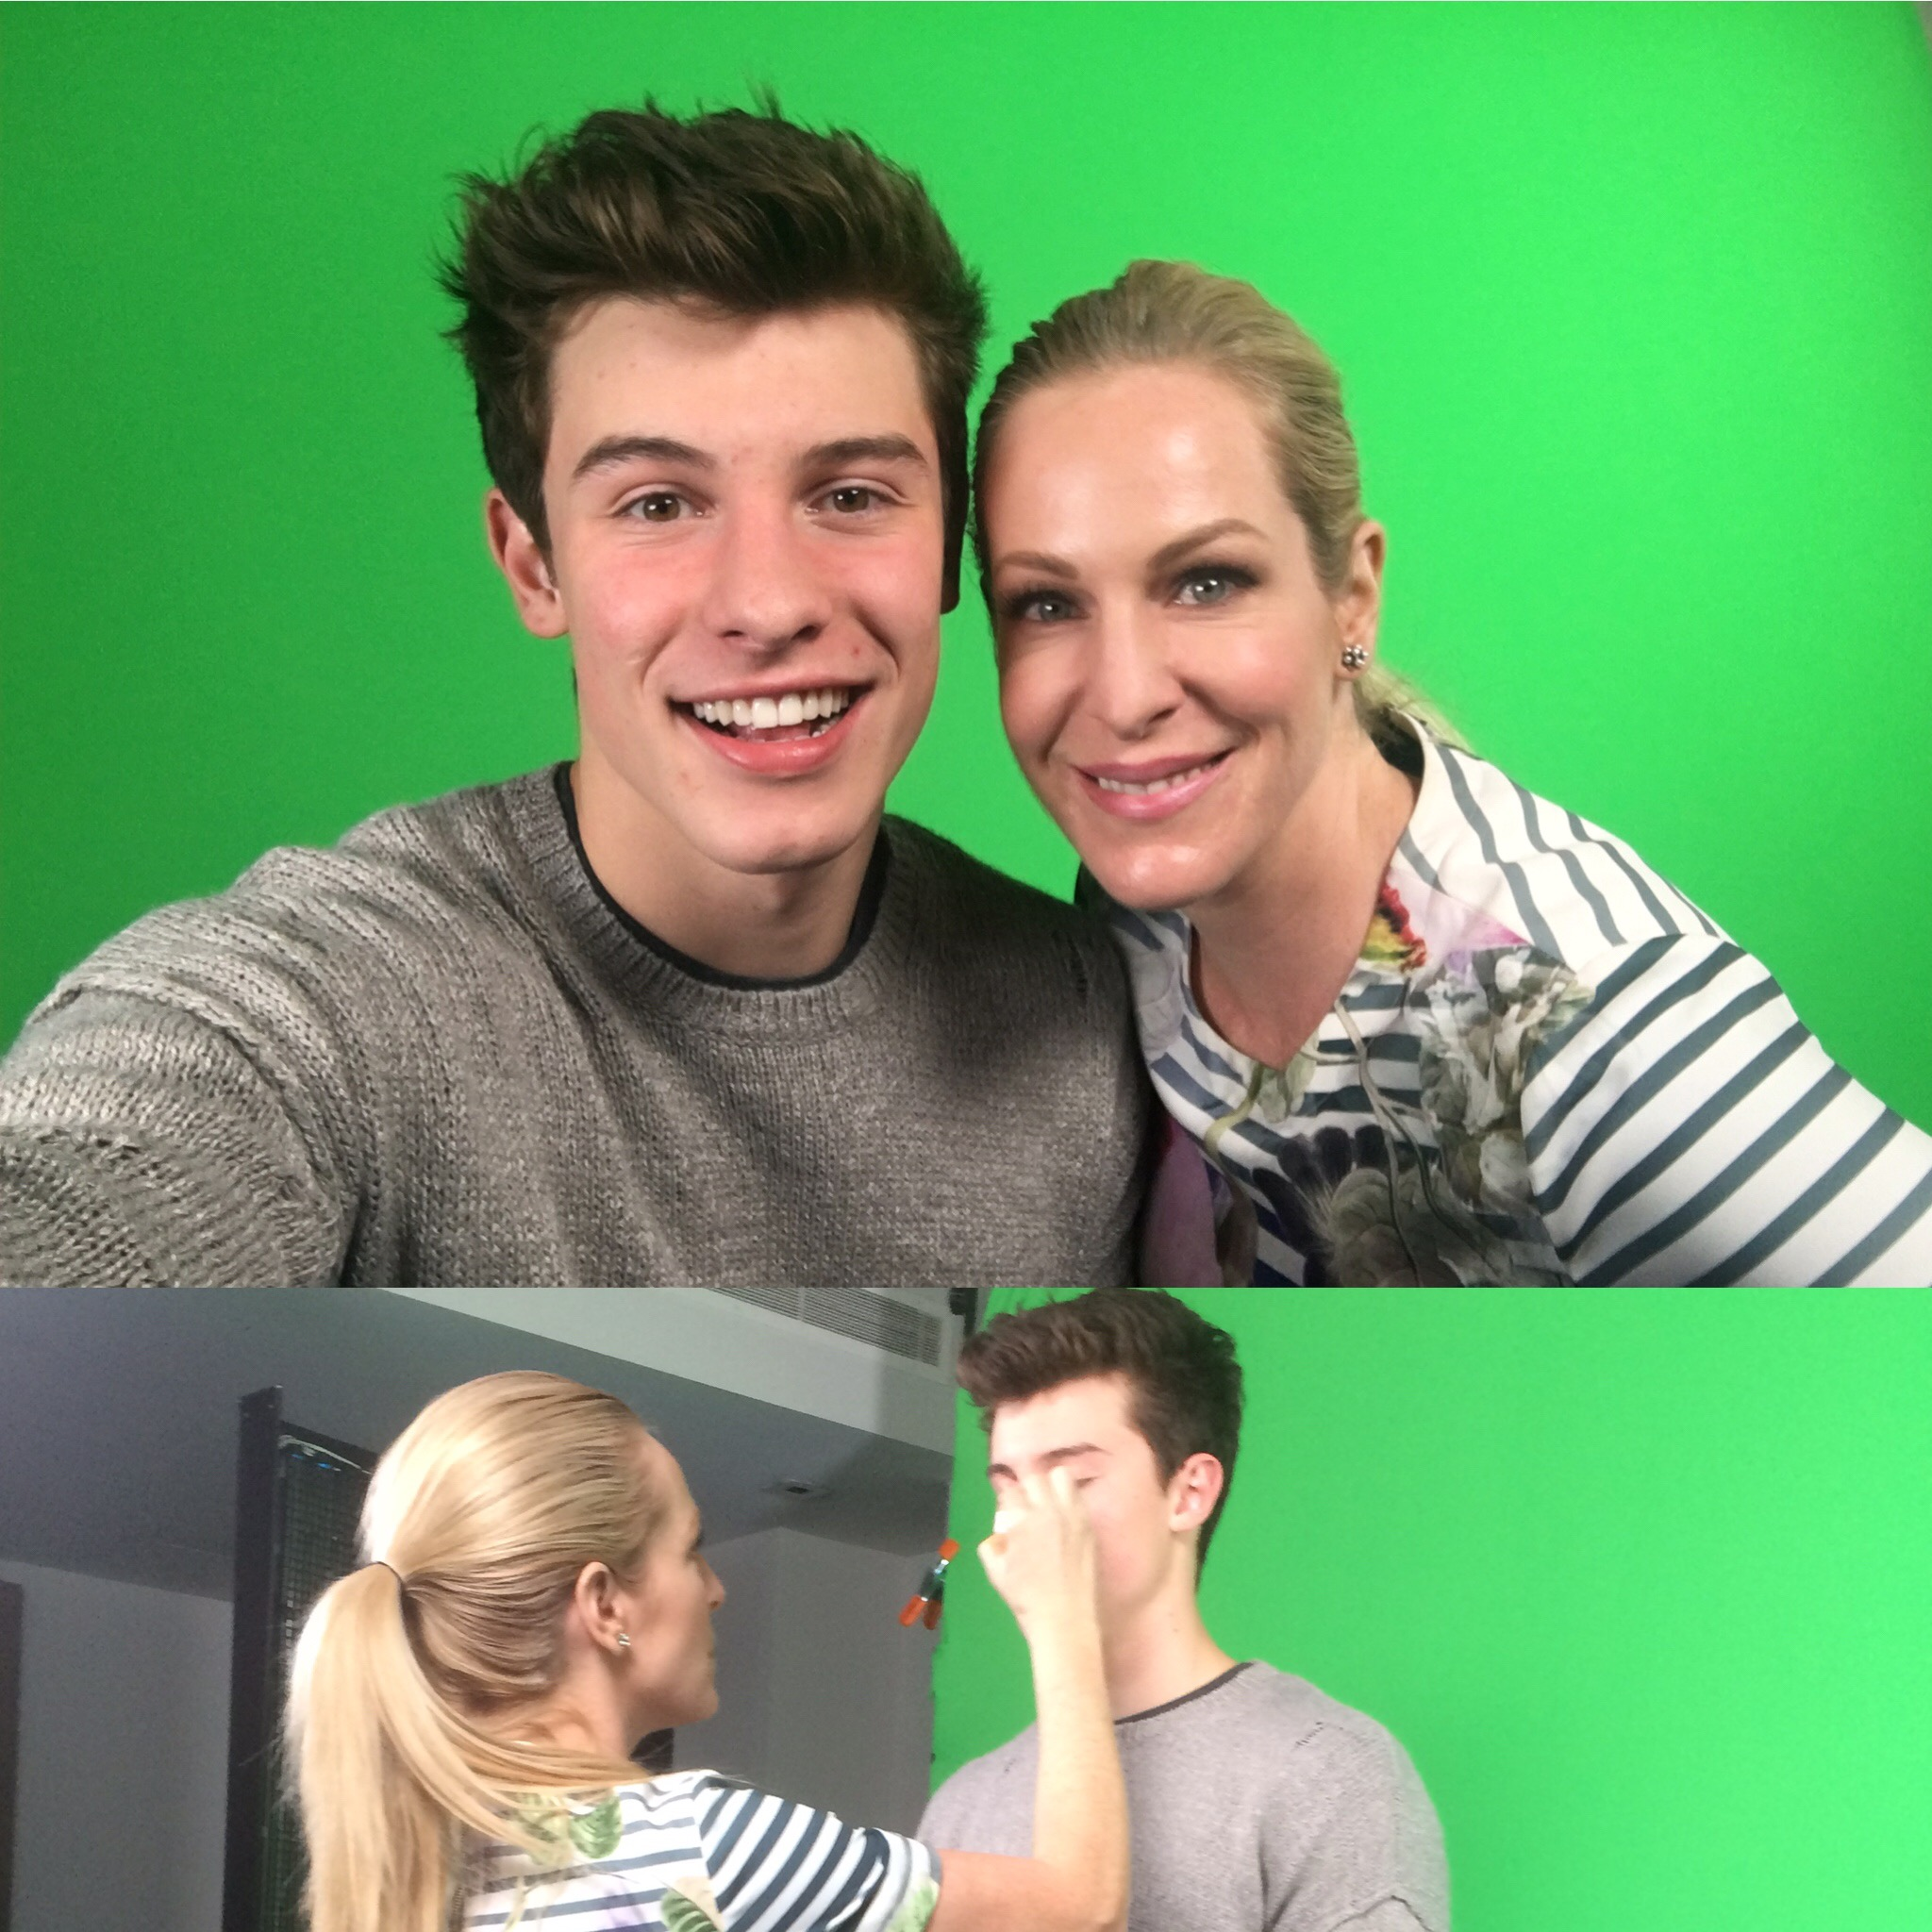 Makeup Artist for Music Artists - Shawn Mendes